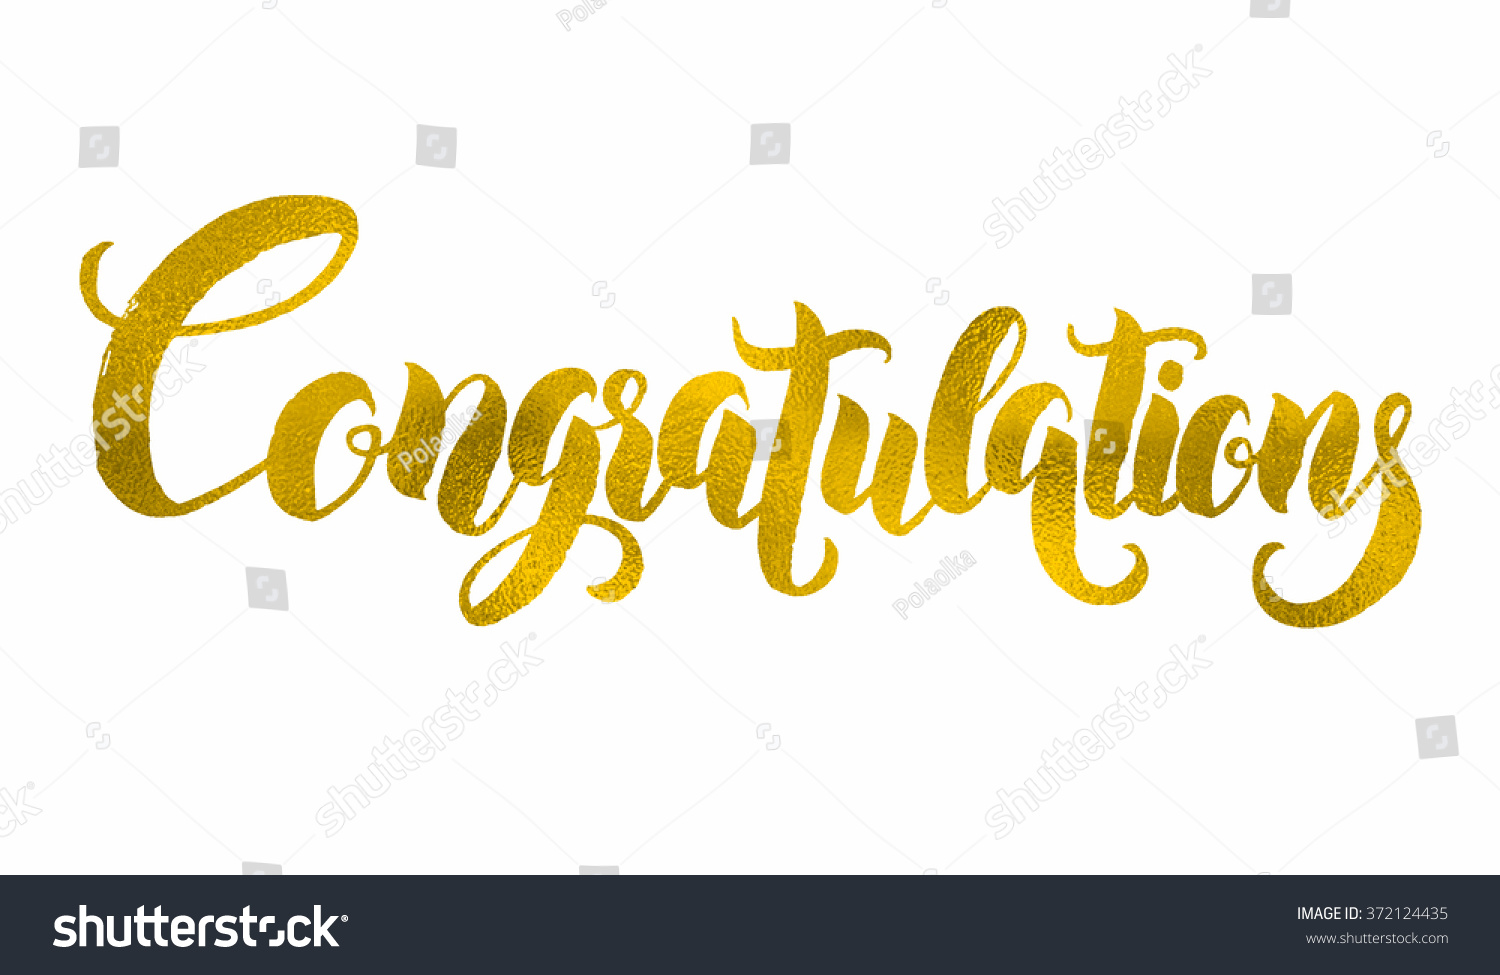 Congratulations hand lettering modern brush calligraphy